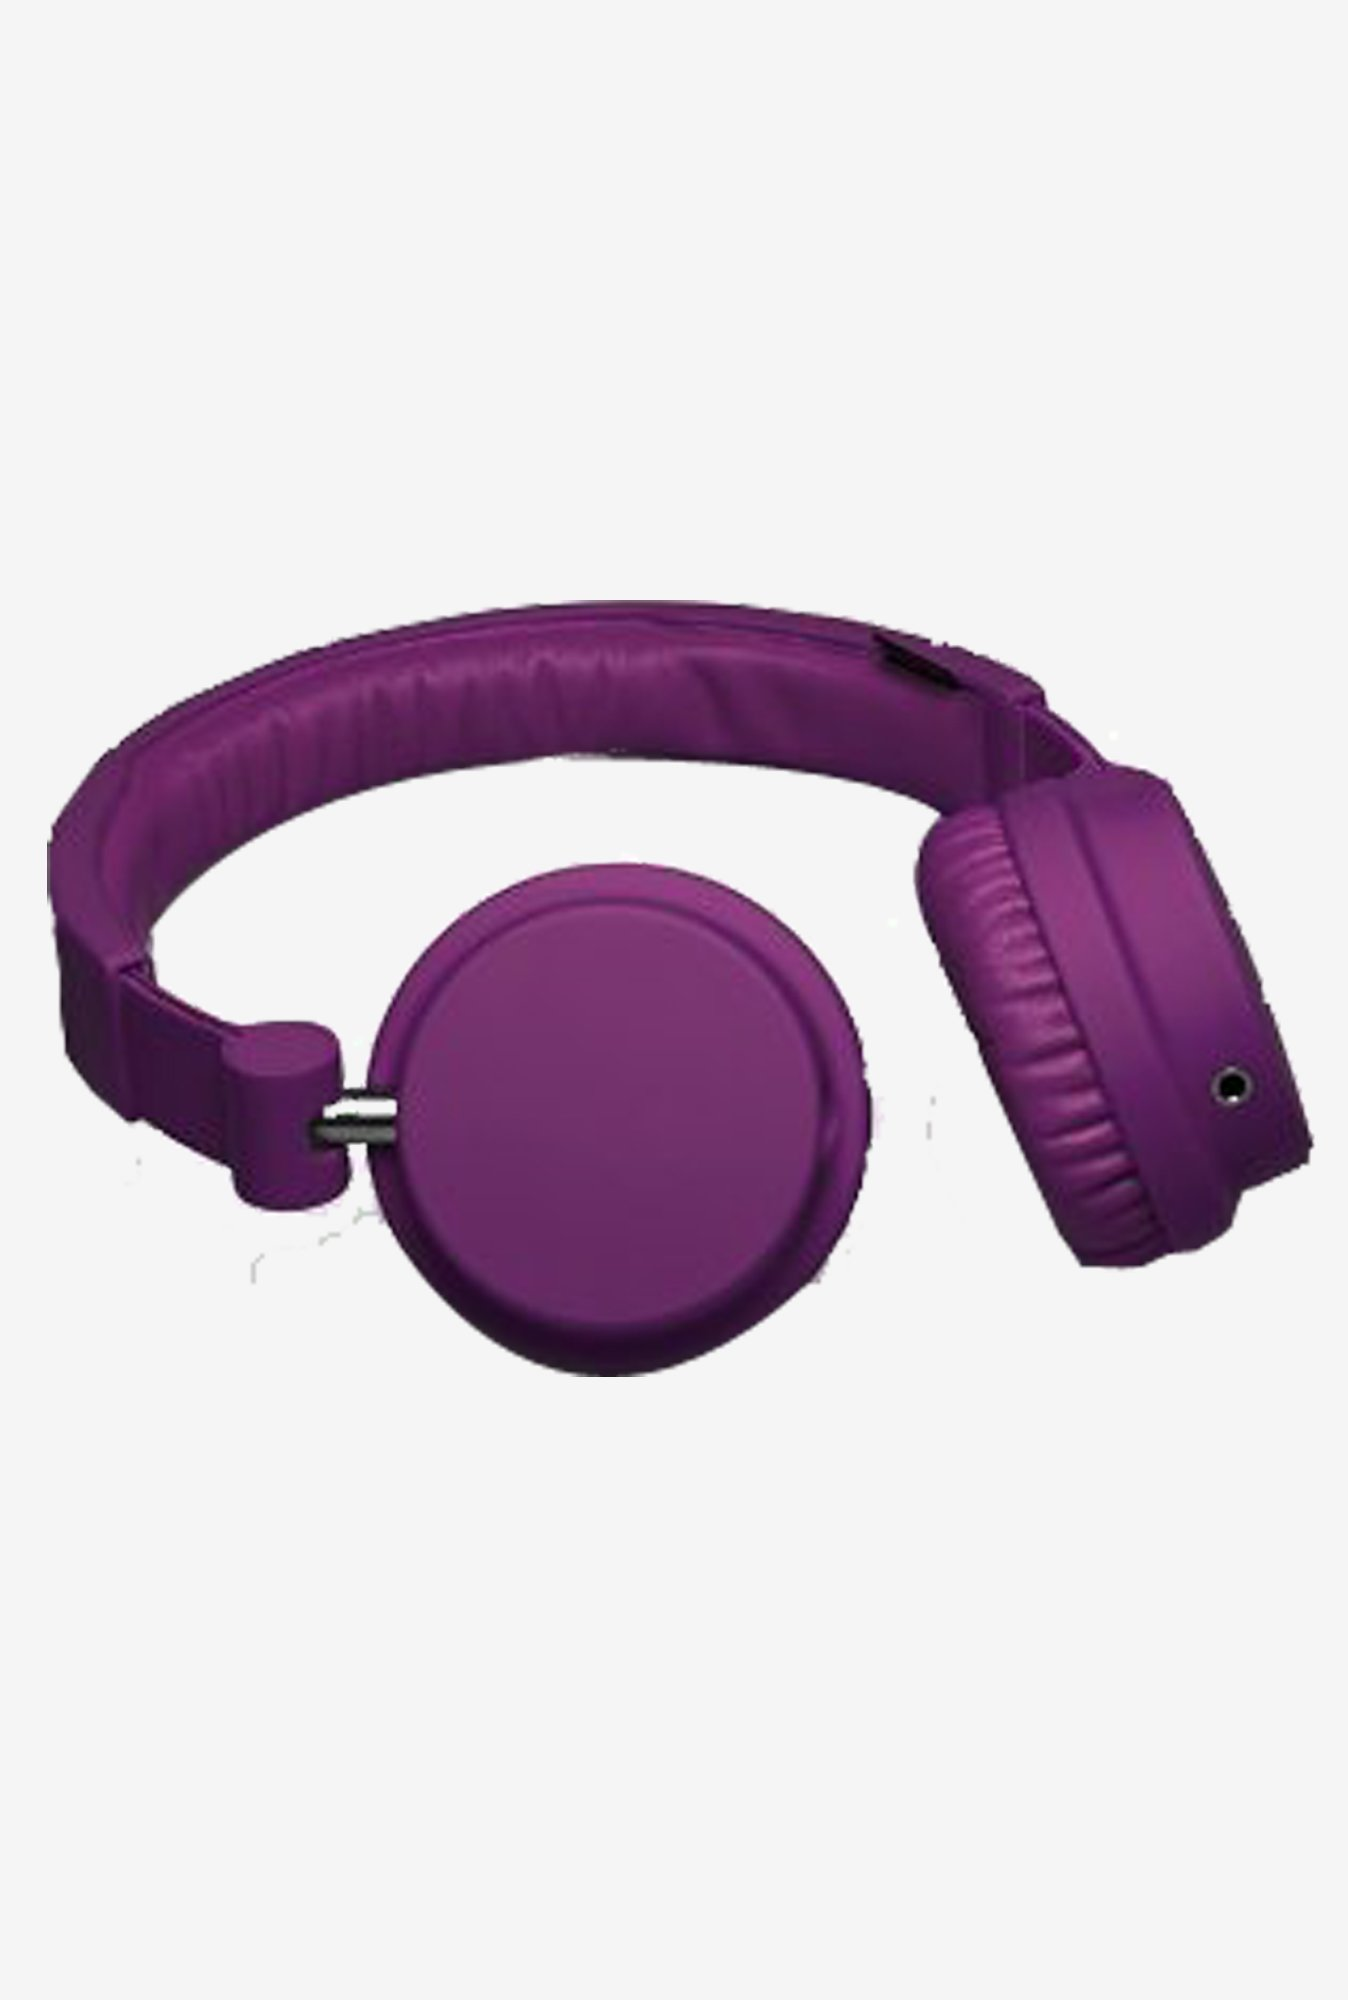 Urbanears 4090621 Zinken On The Ear Headphone (Grape)